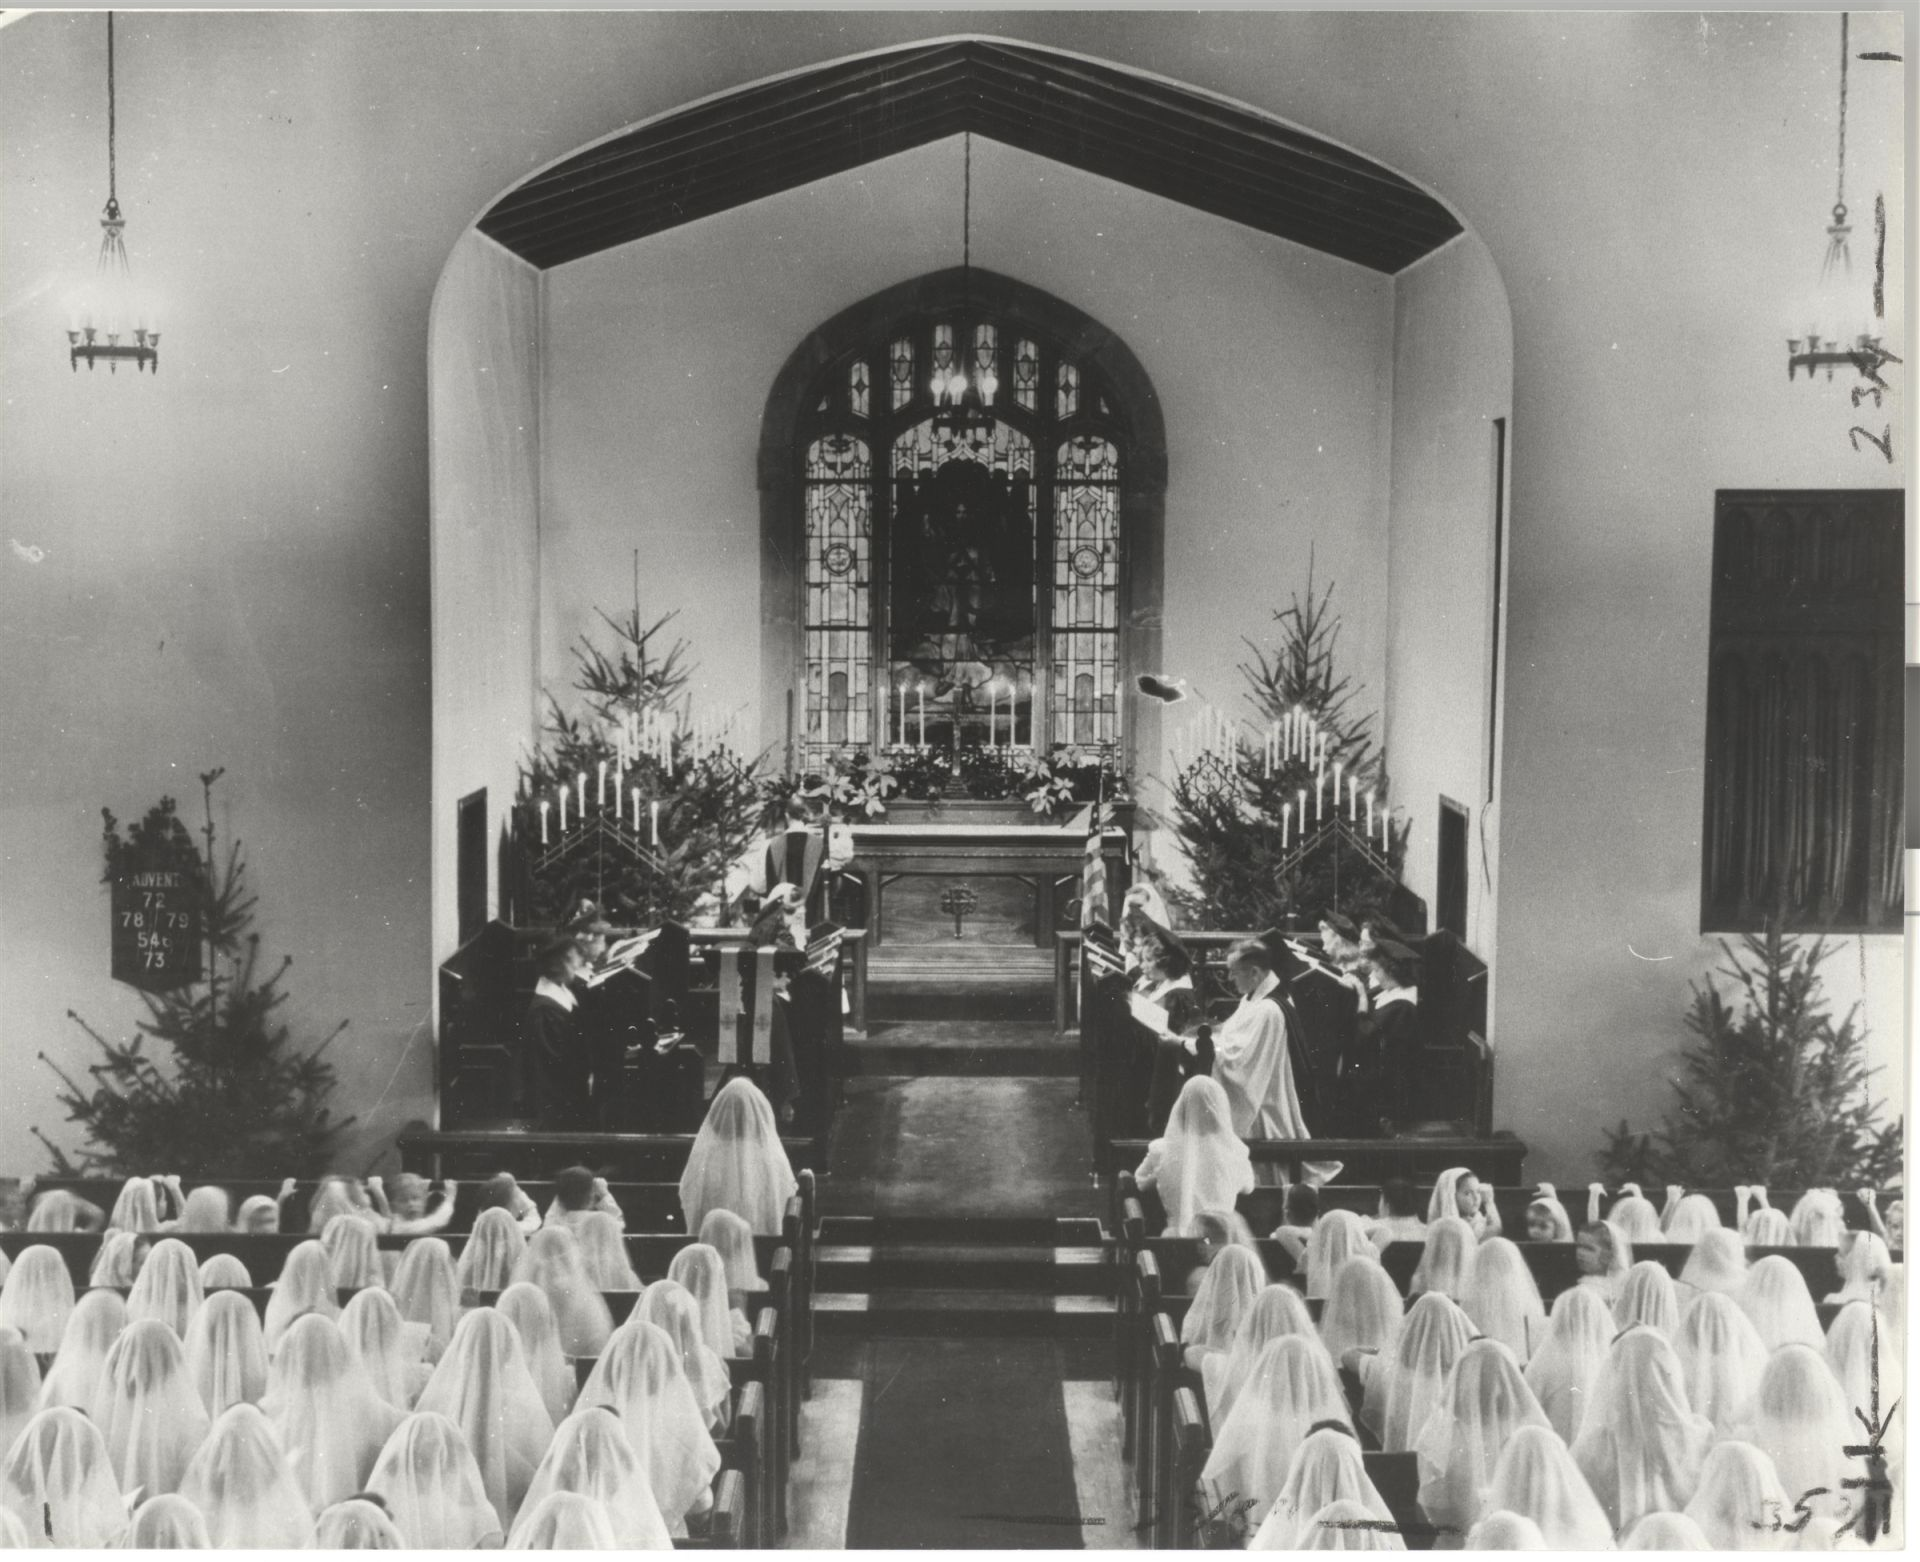 Chapel in the 1930s